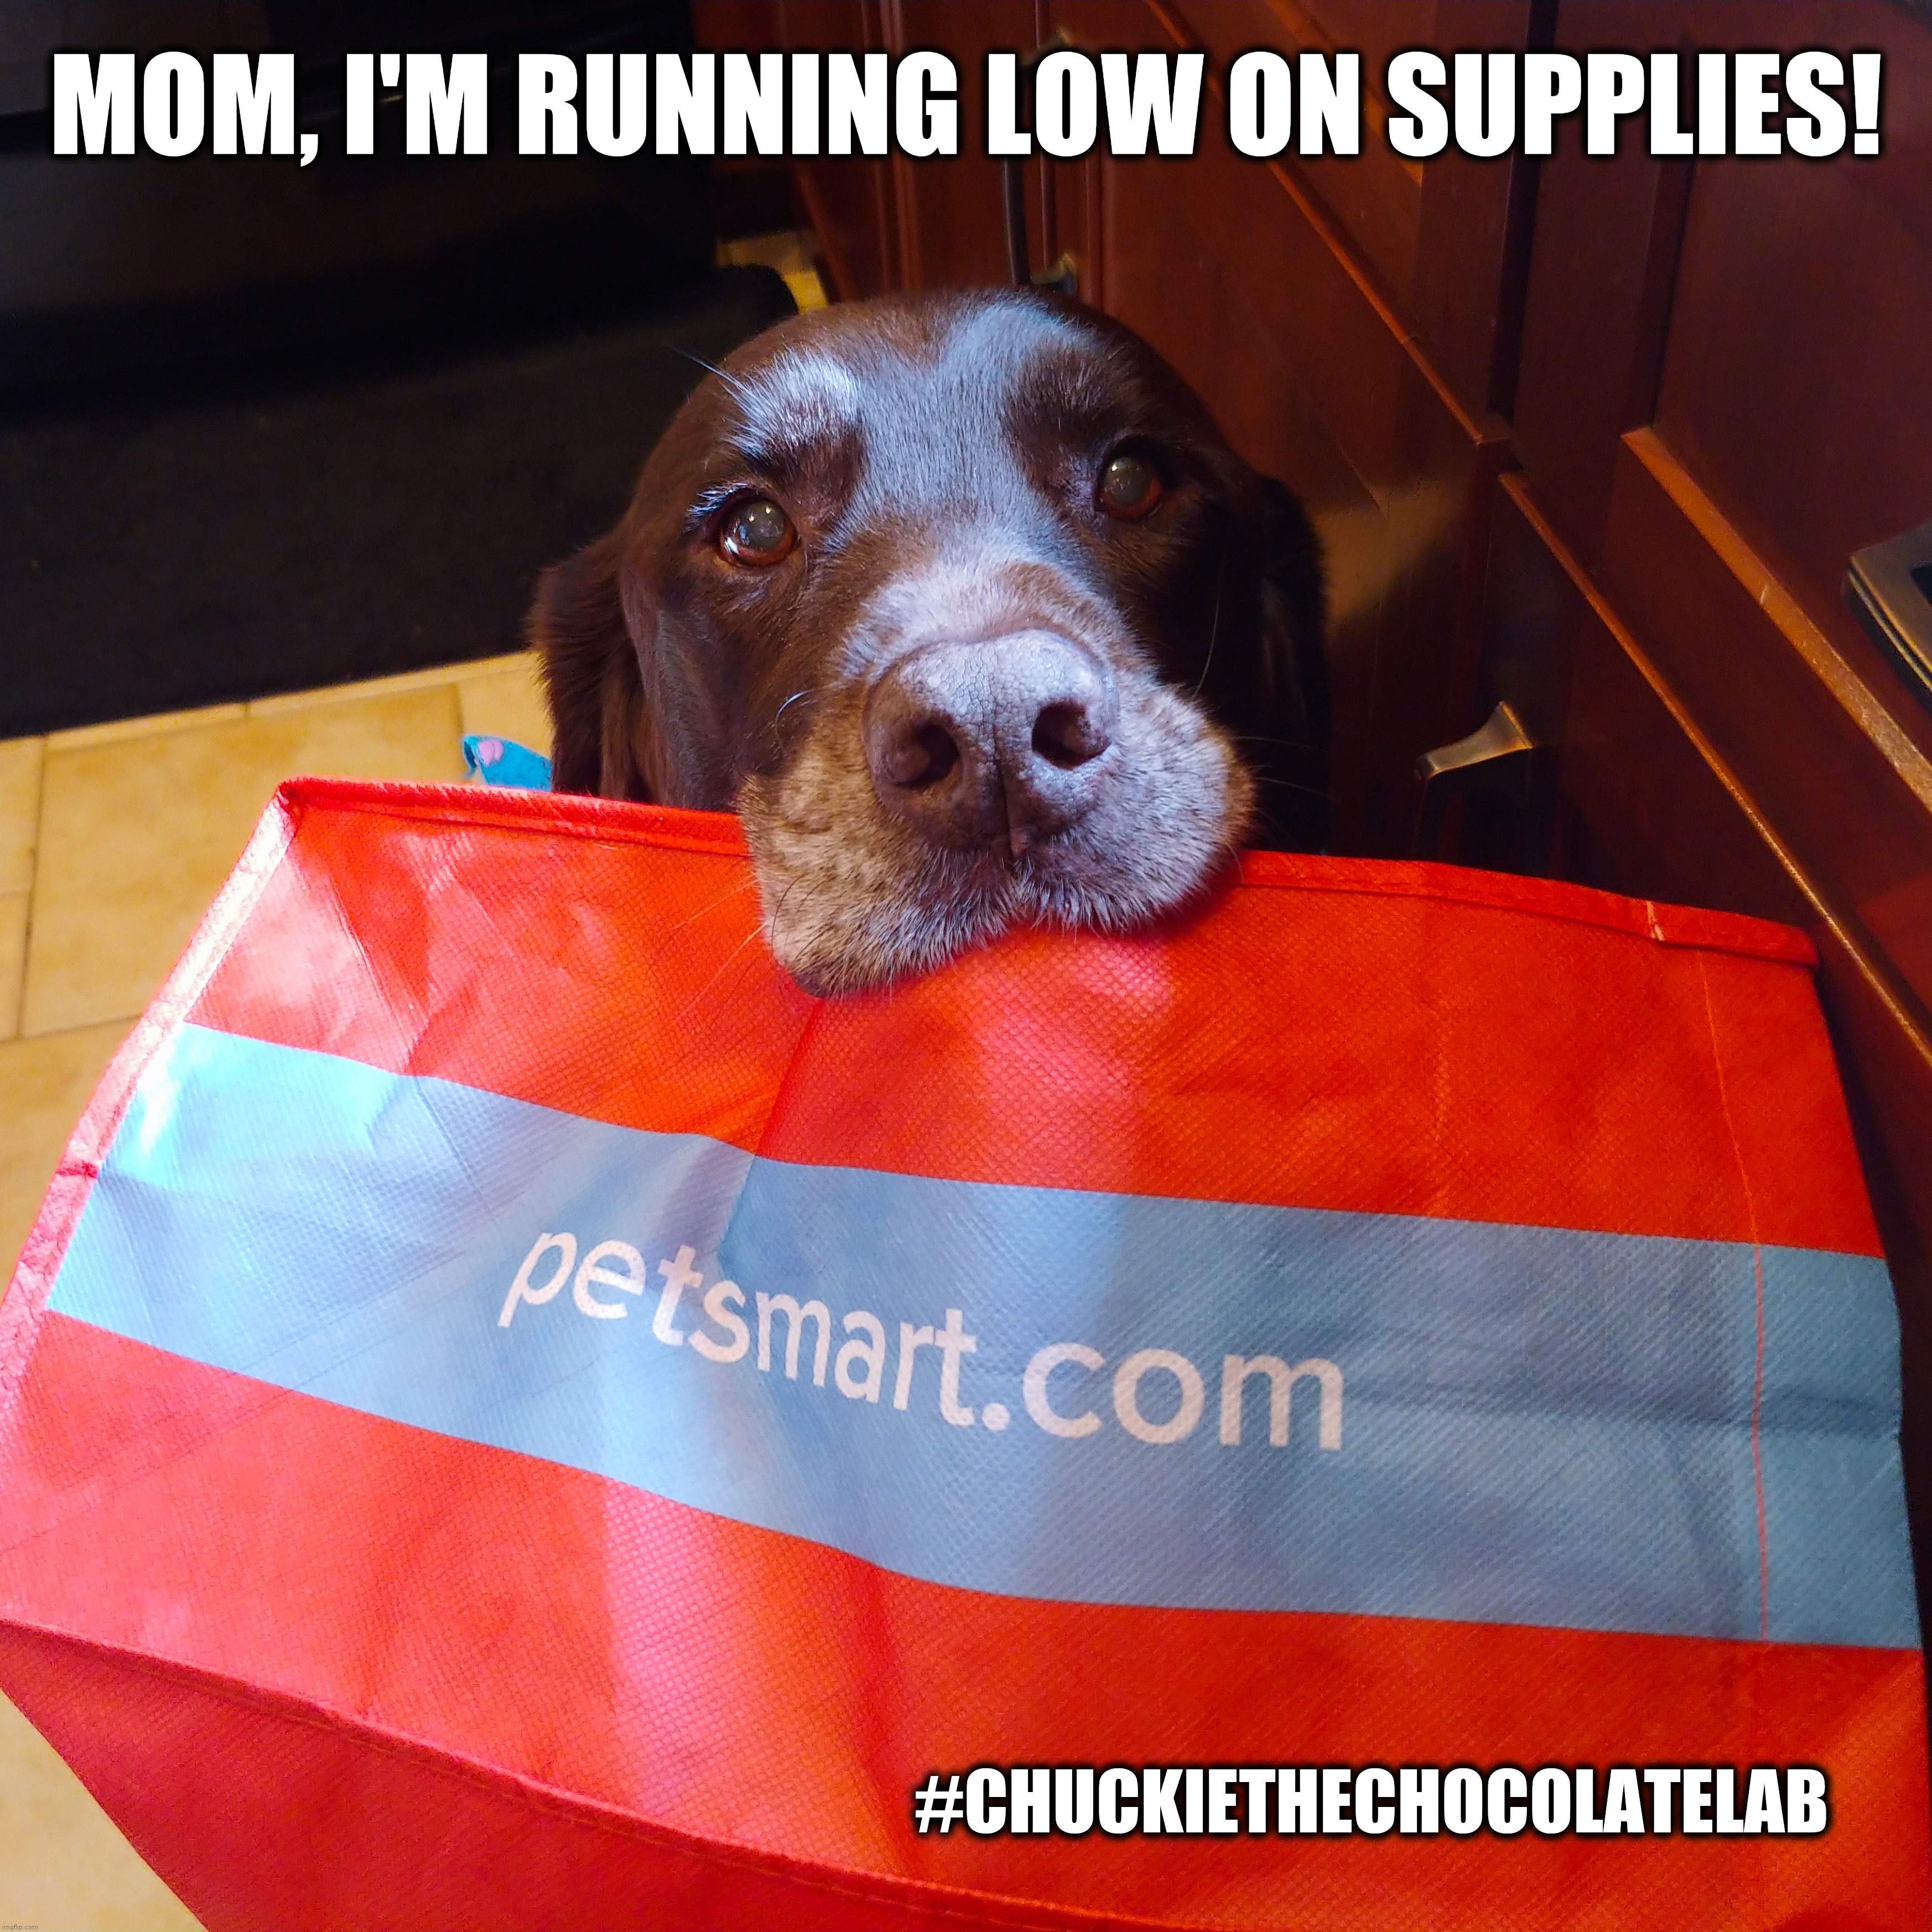 Mom, I'm running low on supplies! |  MOM, I'M RUNNING LOW ON SUPPLIES! #CHUCKIETHECHOCOLATELAB | image tagged in chuckie the chocolate lab,petsmart,pets,store,dogs,funny | made w/ Imgflip meme maker